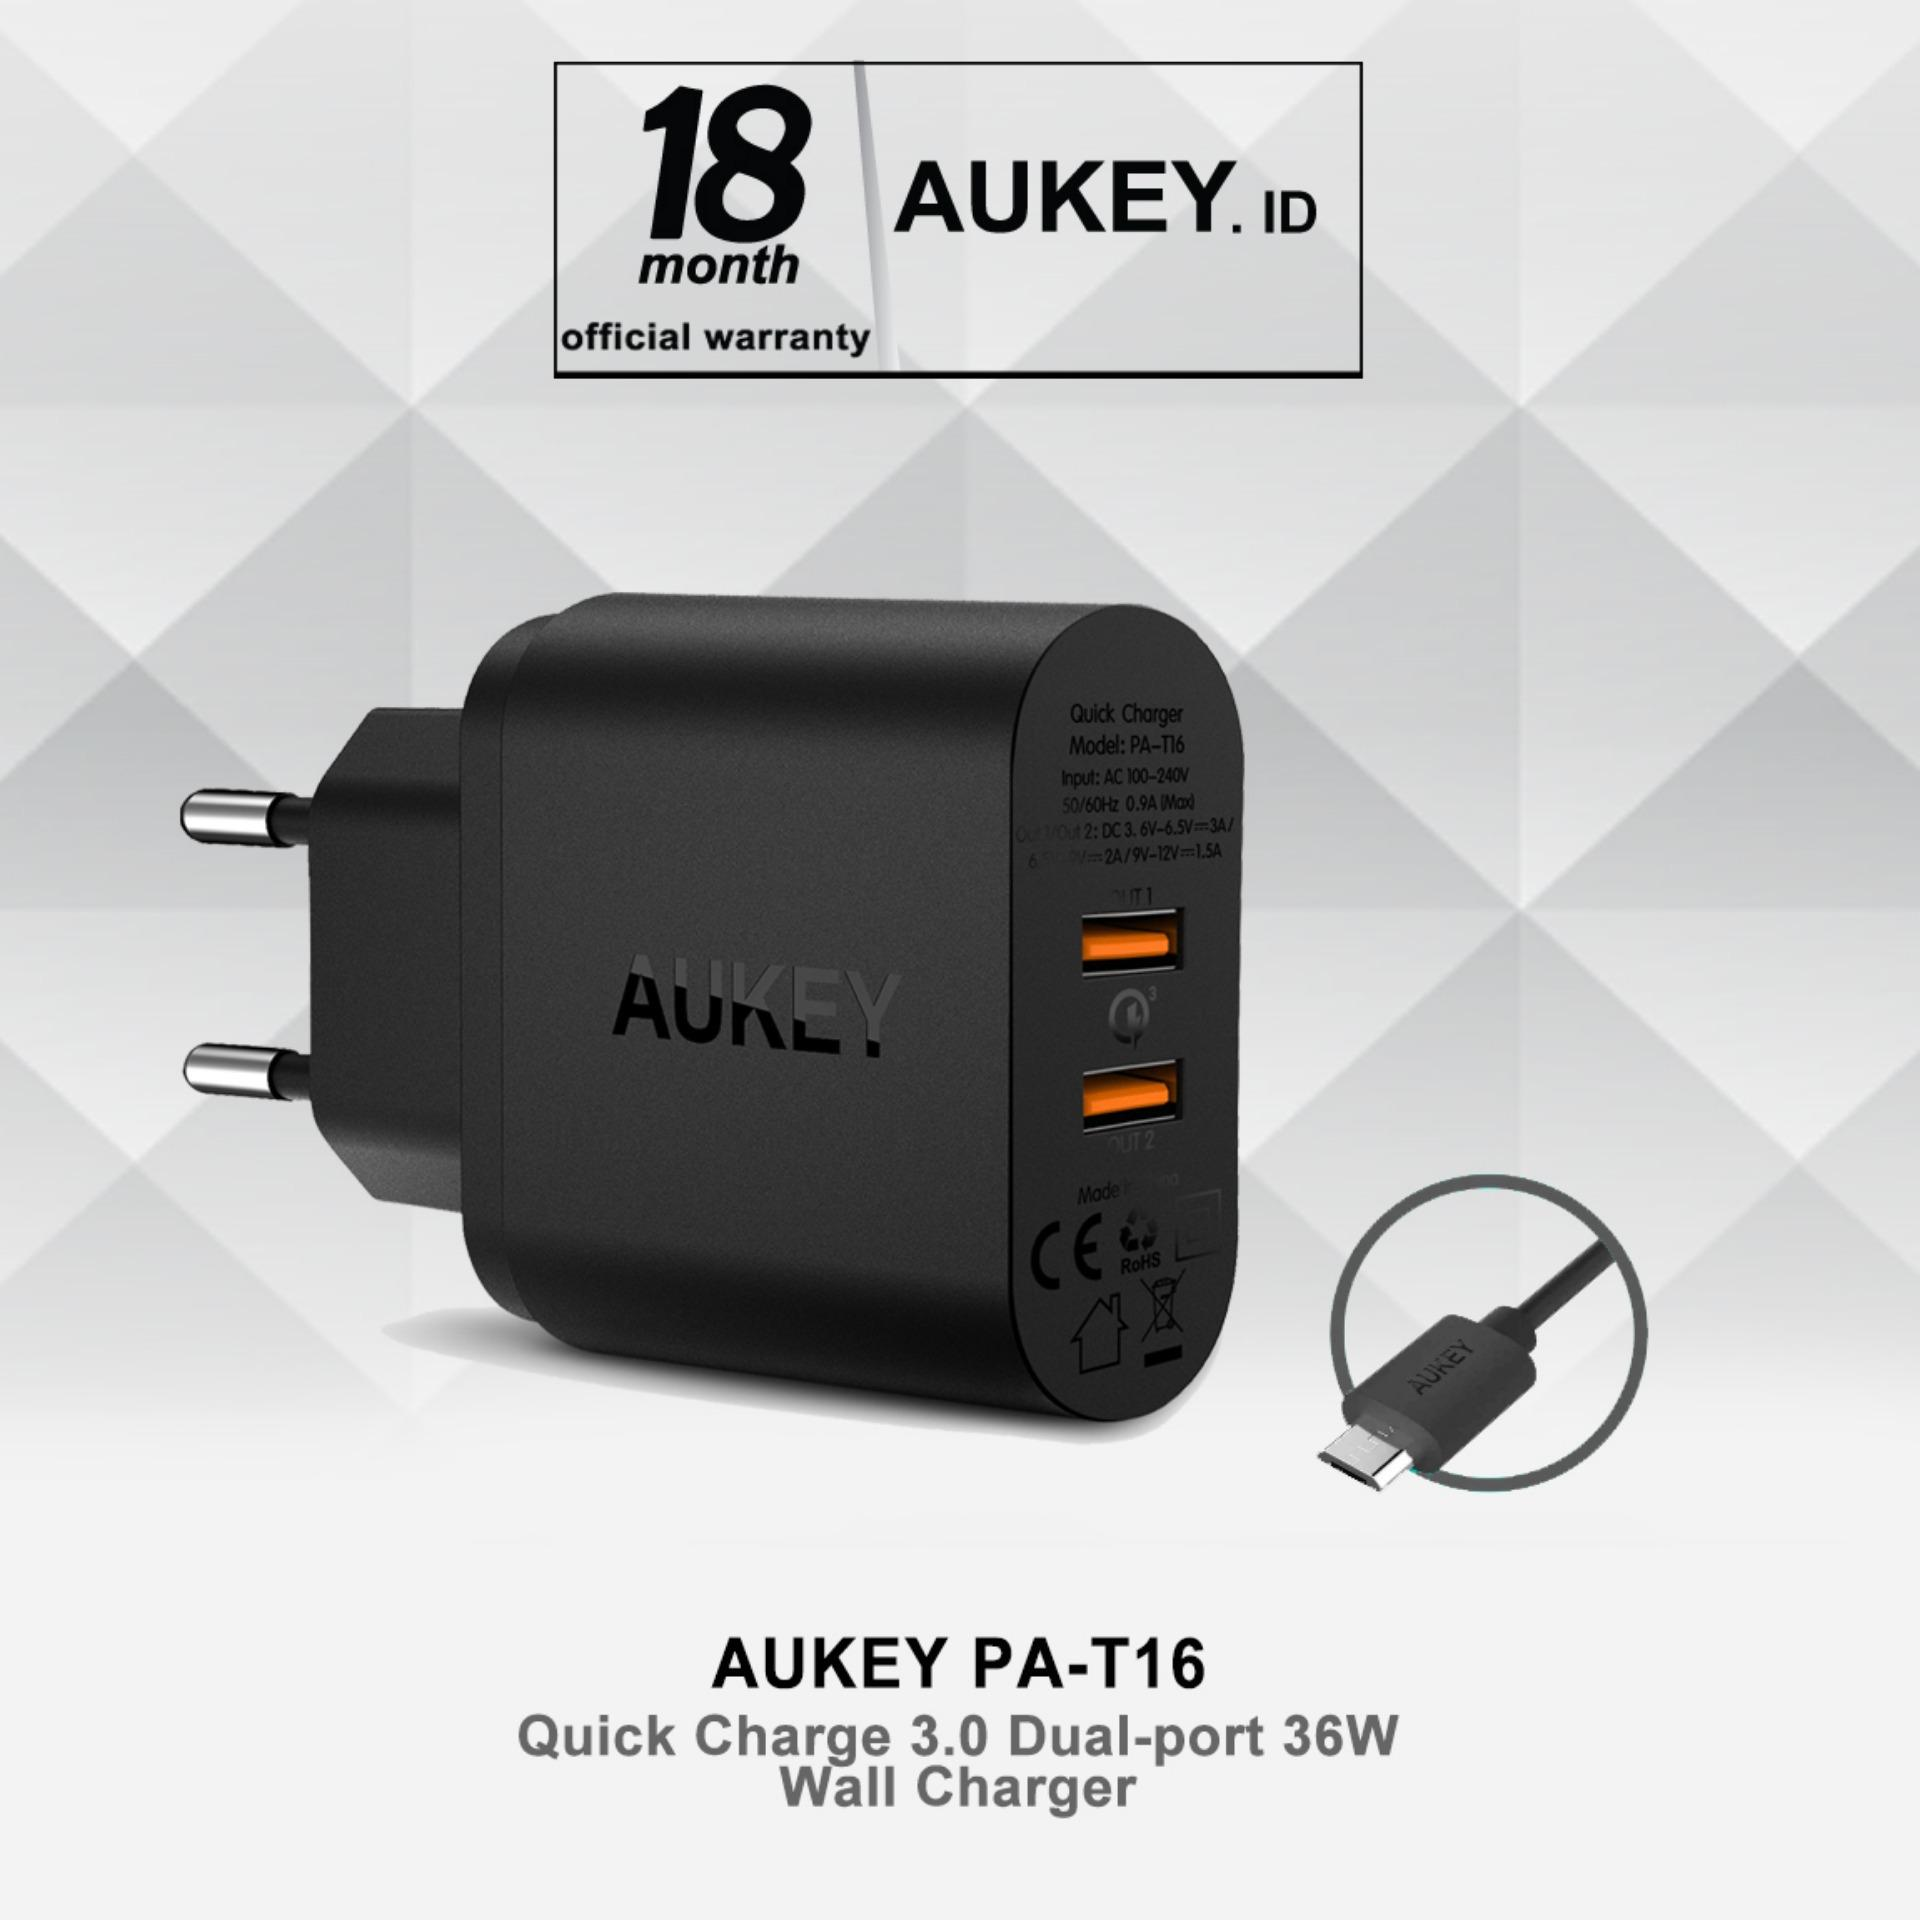 Katalog Aukey Pa T16 36W 2 Port Usb Wall Charger With Quick Charge 3 Hitam Aukey Terbaru